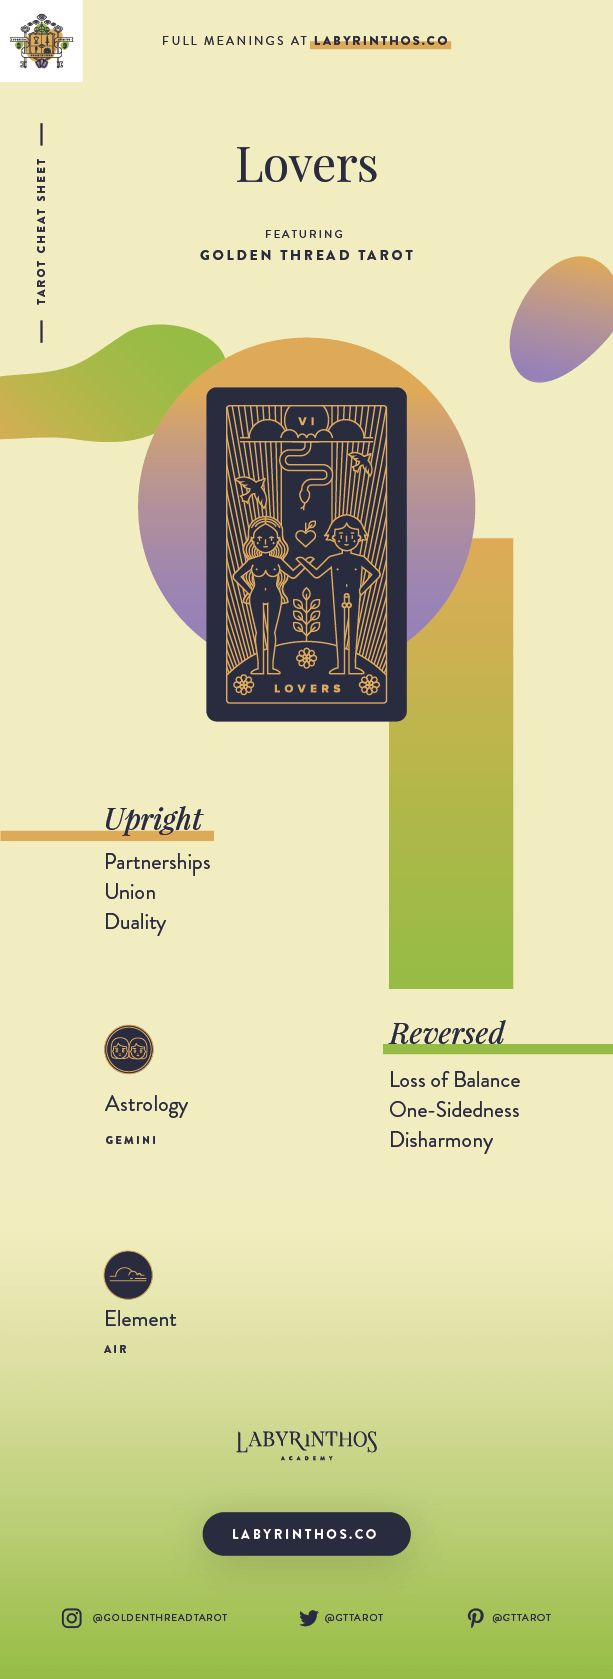 The Lovers Meaning - Tarot Card Meanings Cheat Sheet. Art from Golden Thread Tarot.